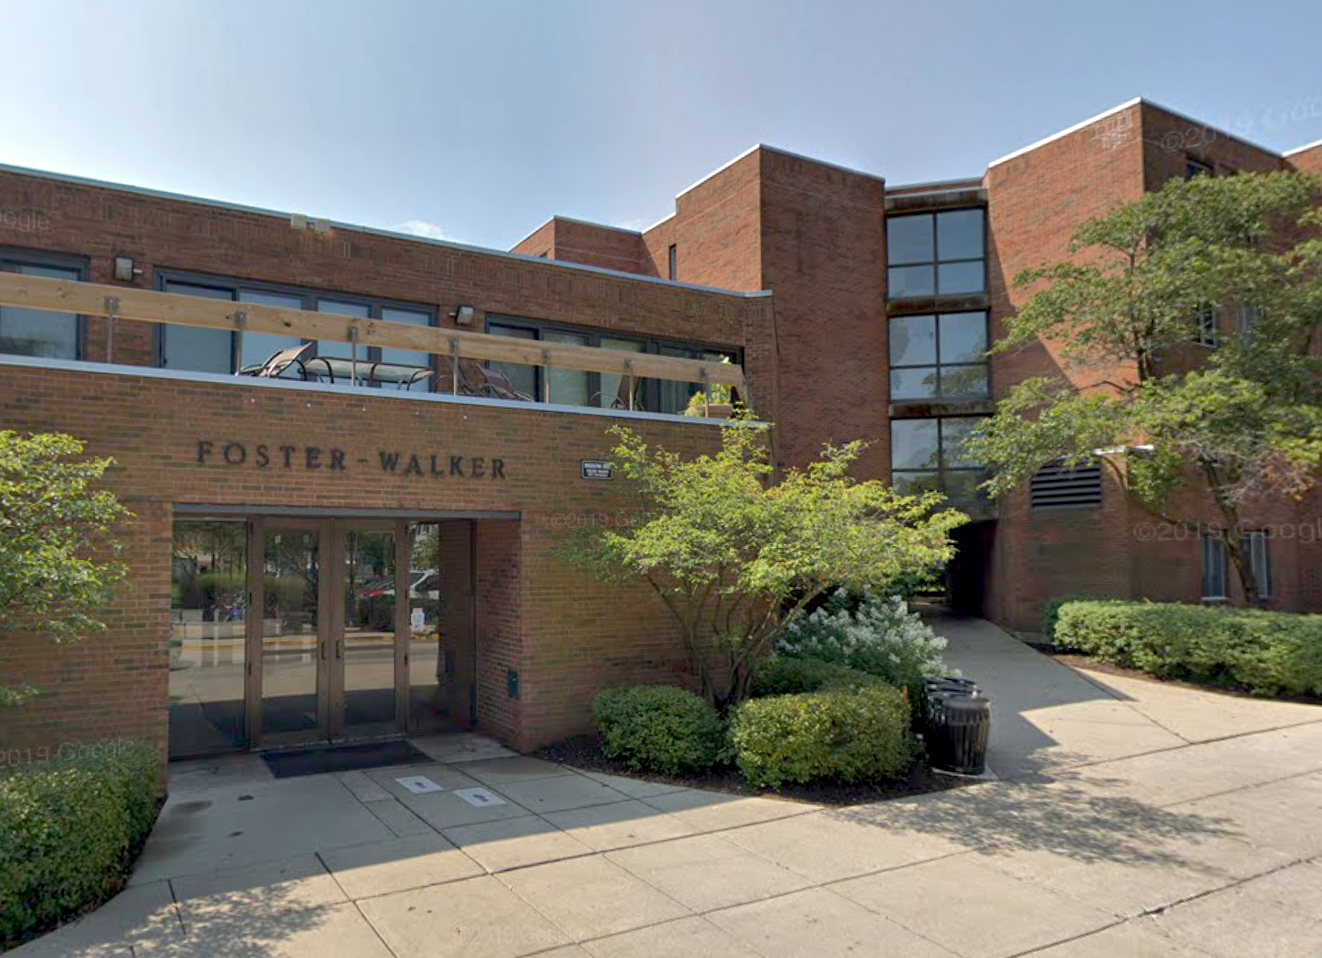 Police say that COVID-19 test kits were stolen from the Foster-Walker Complex, 1927 Orrington Ave., at Northwestern University's Evanston campus.